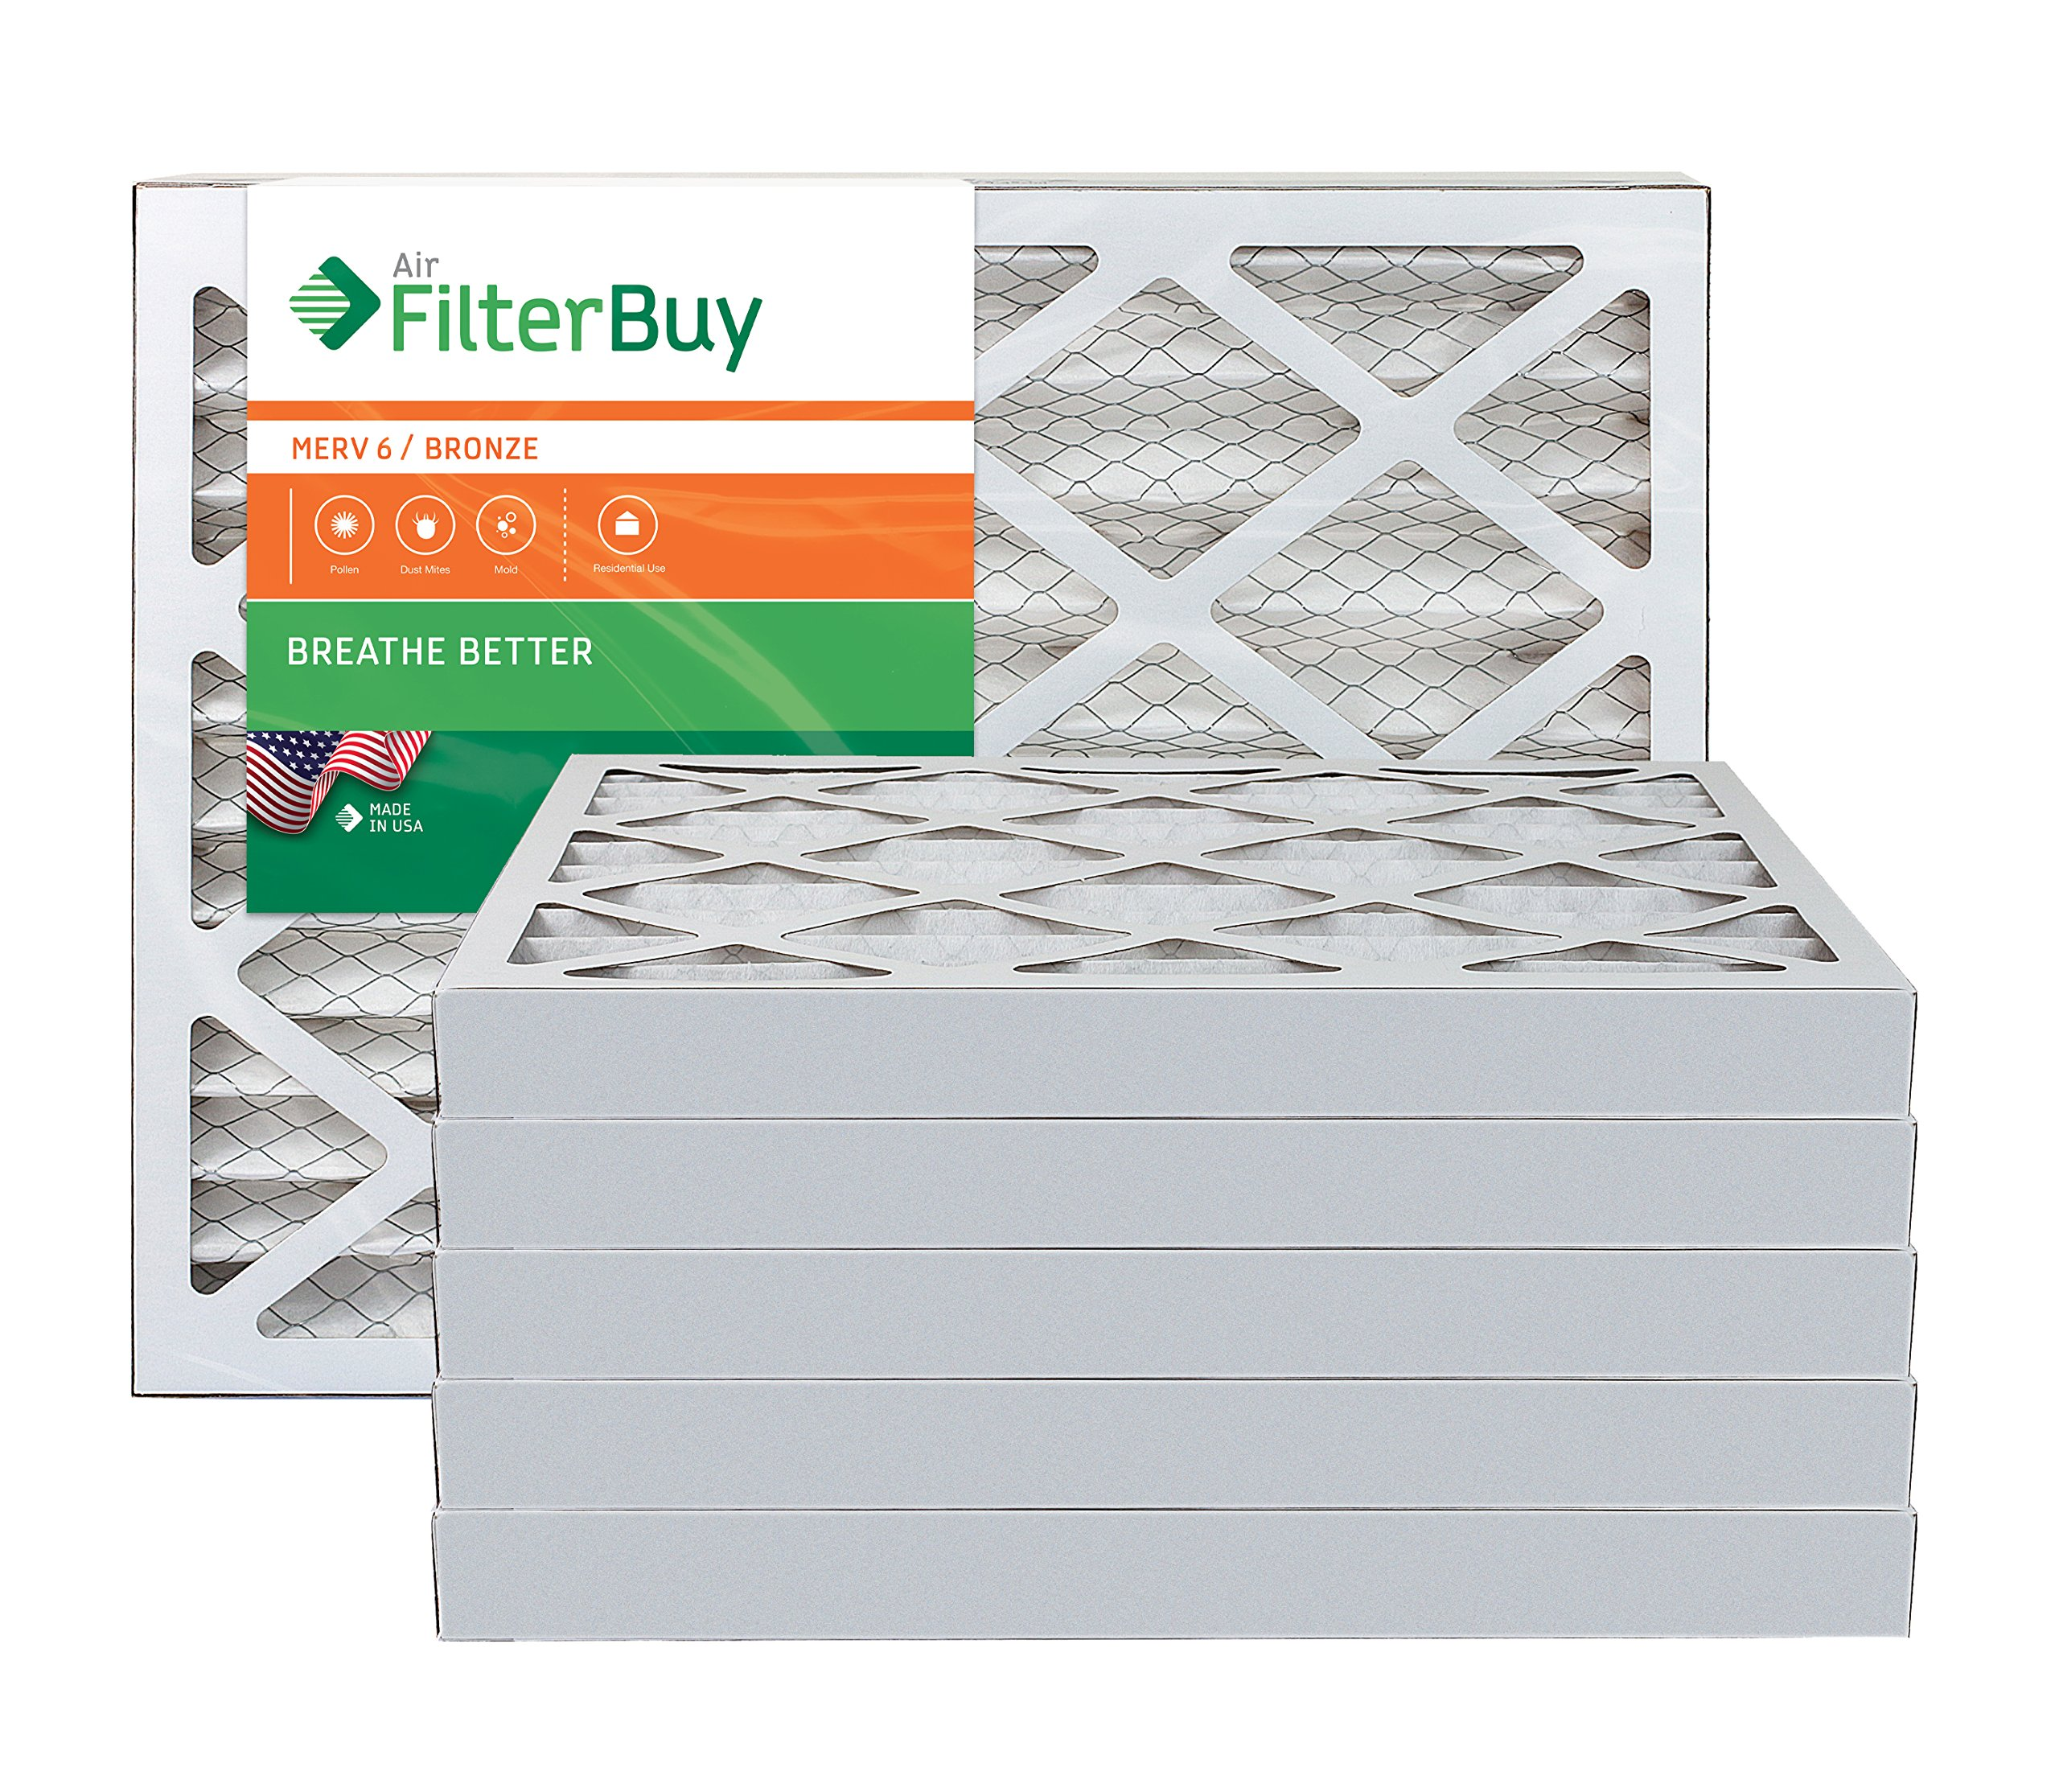 AFB Bronze MERV 6 30x36x2 Pleated AC Furnace Air Filter. Pack of 6 Filters. 100% produced in the USA. by FilterBuy